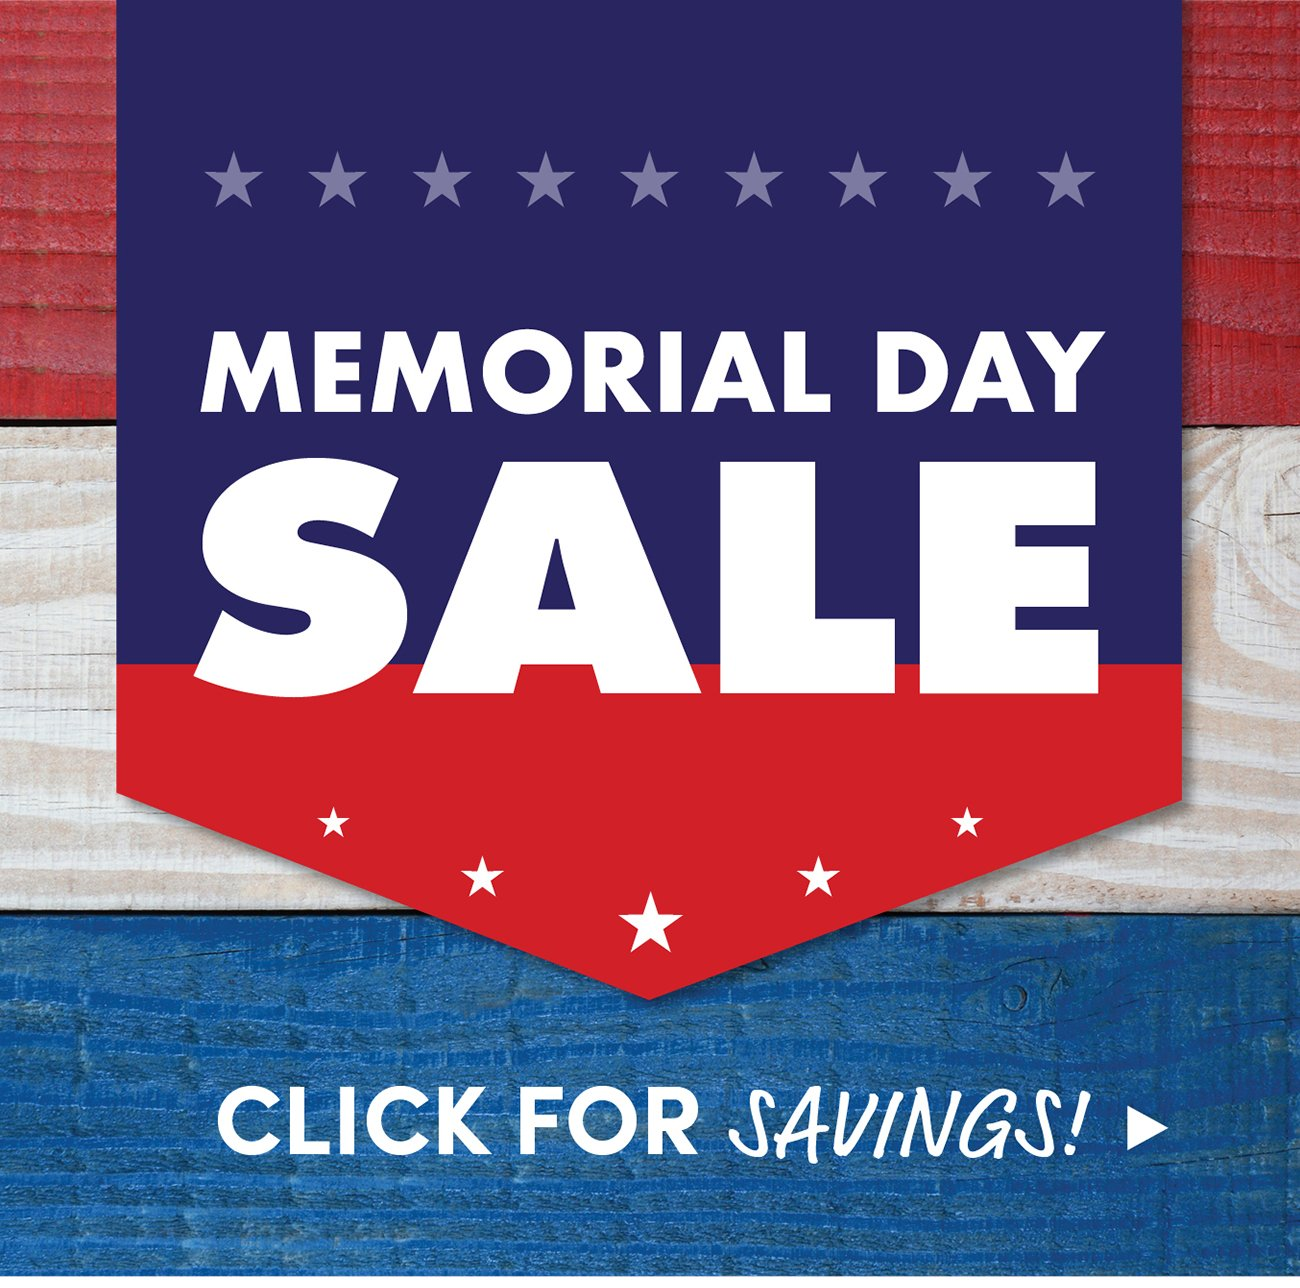 weekend ends day sale furniture memorial p july minnesota